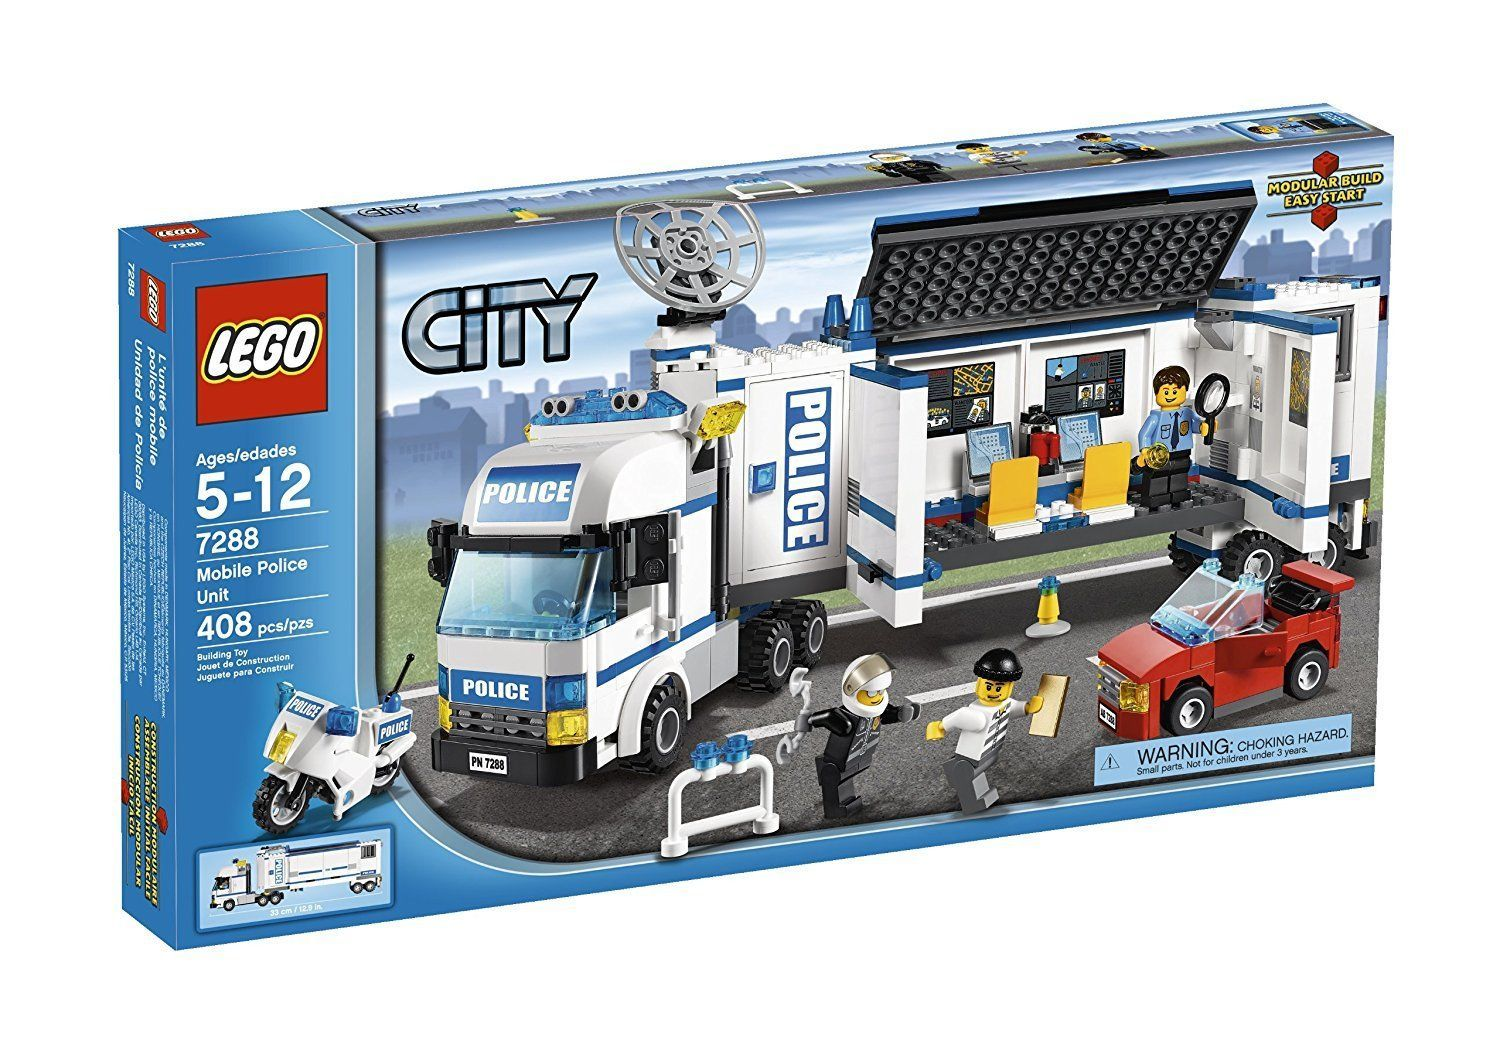 LEGO City Mobile Police Unit Building Play Set 7288 NEW